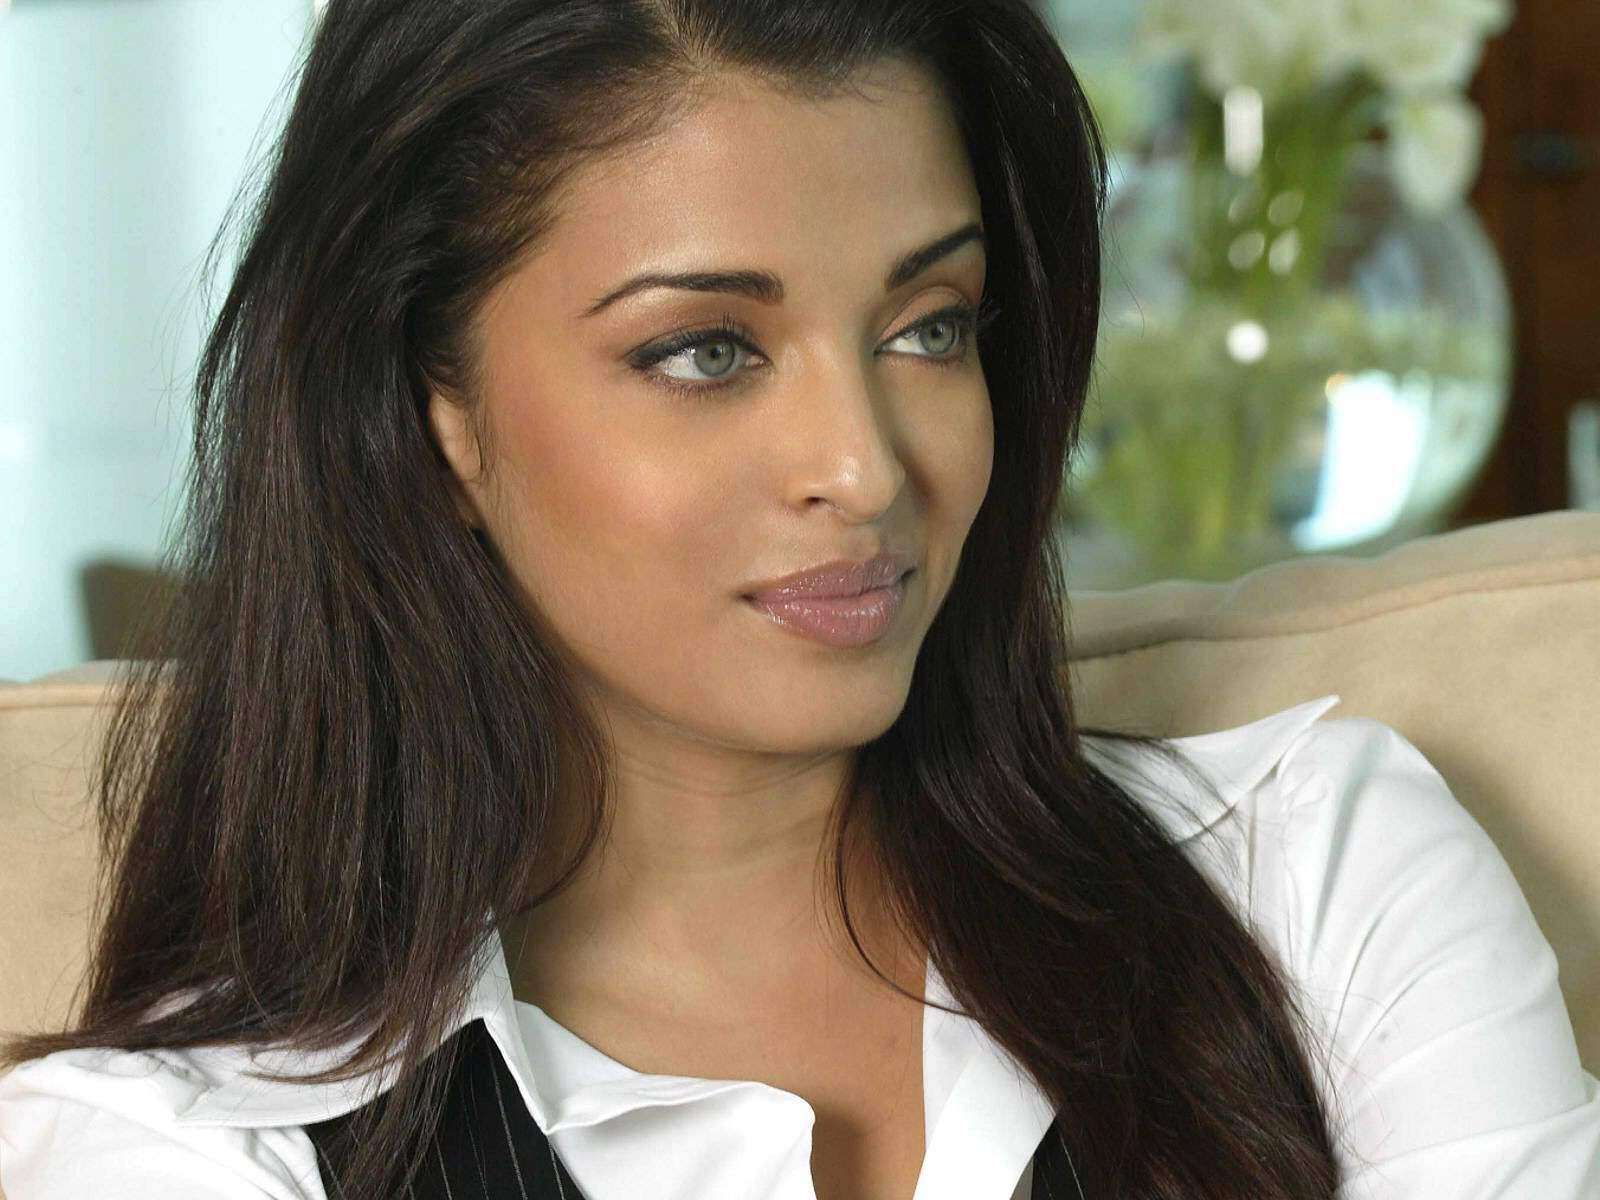 Image From Http Images Desimartini Com Media Uploads 2015 5 Aishwarya Rai Bachchan Wallpaper 8 Aishwarya Rai Without Makeup Beauty Overnight Beauty